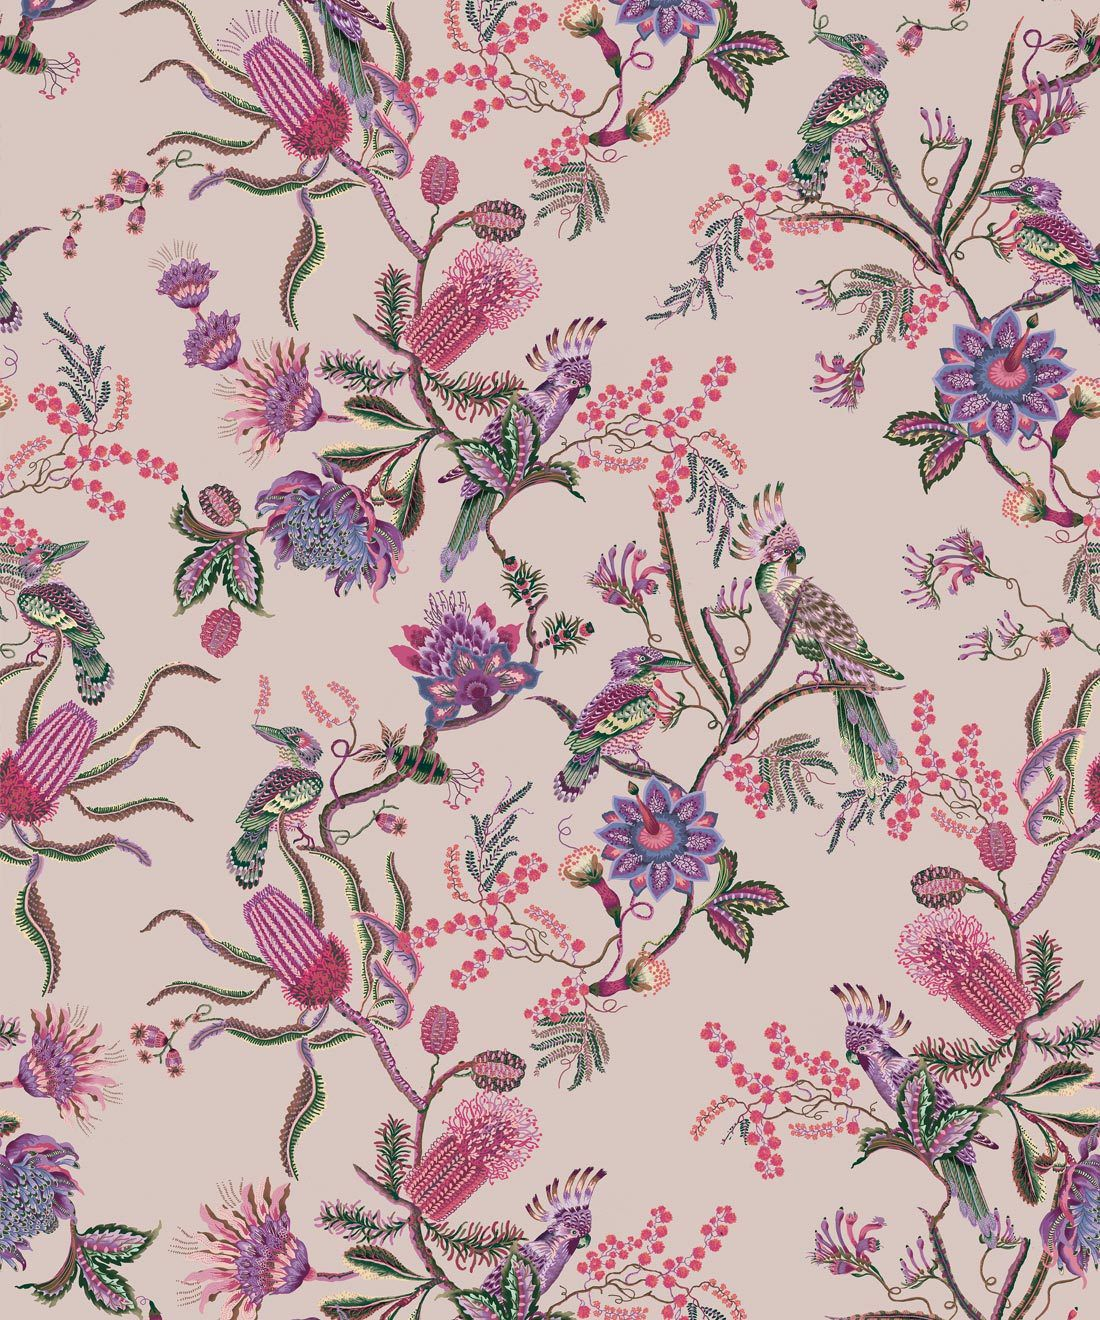 Matilda Wallpaper • Cockatoo, kookaburra • Australian Wallpaper • Milton & King USA • Pinky Swatch